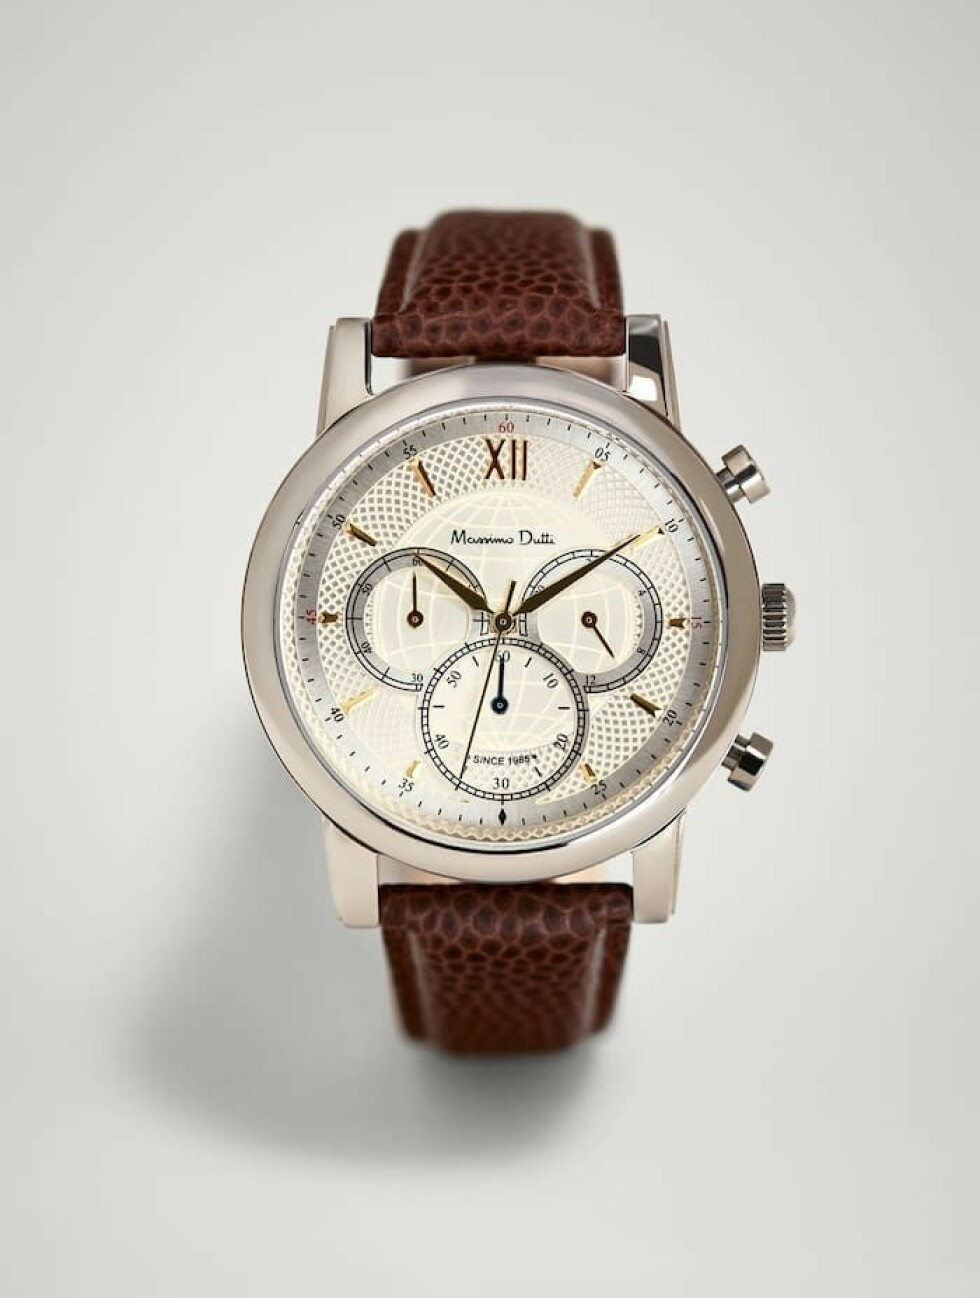 Klokke fra Massimo Dutti |2999,-| https://www.massimodutti.com/no/men/new-in/ready-to-travel/limited-edition-chrono-watch-c1646001p8329635.html?colorId=700&categoryId=1646001